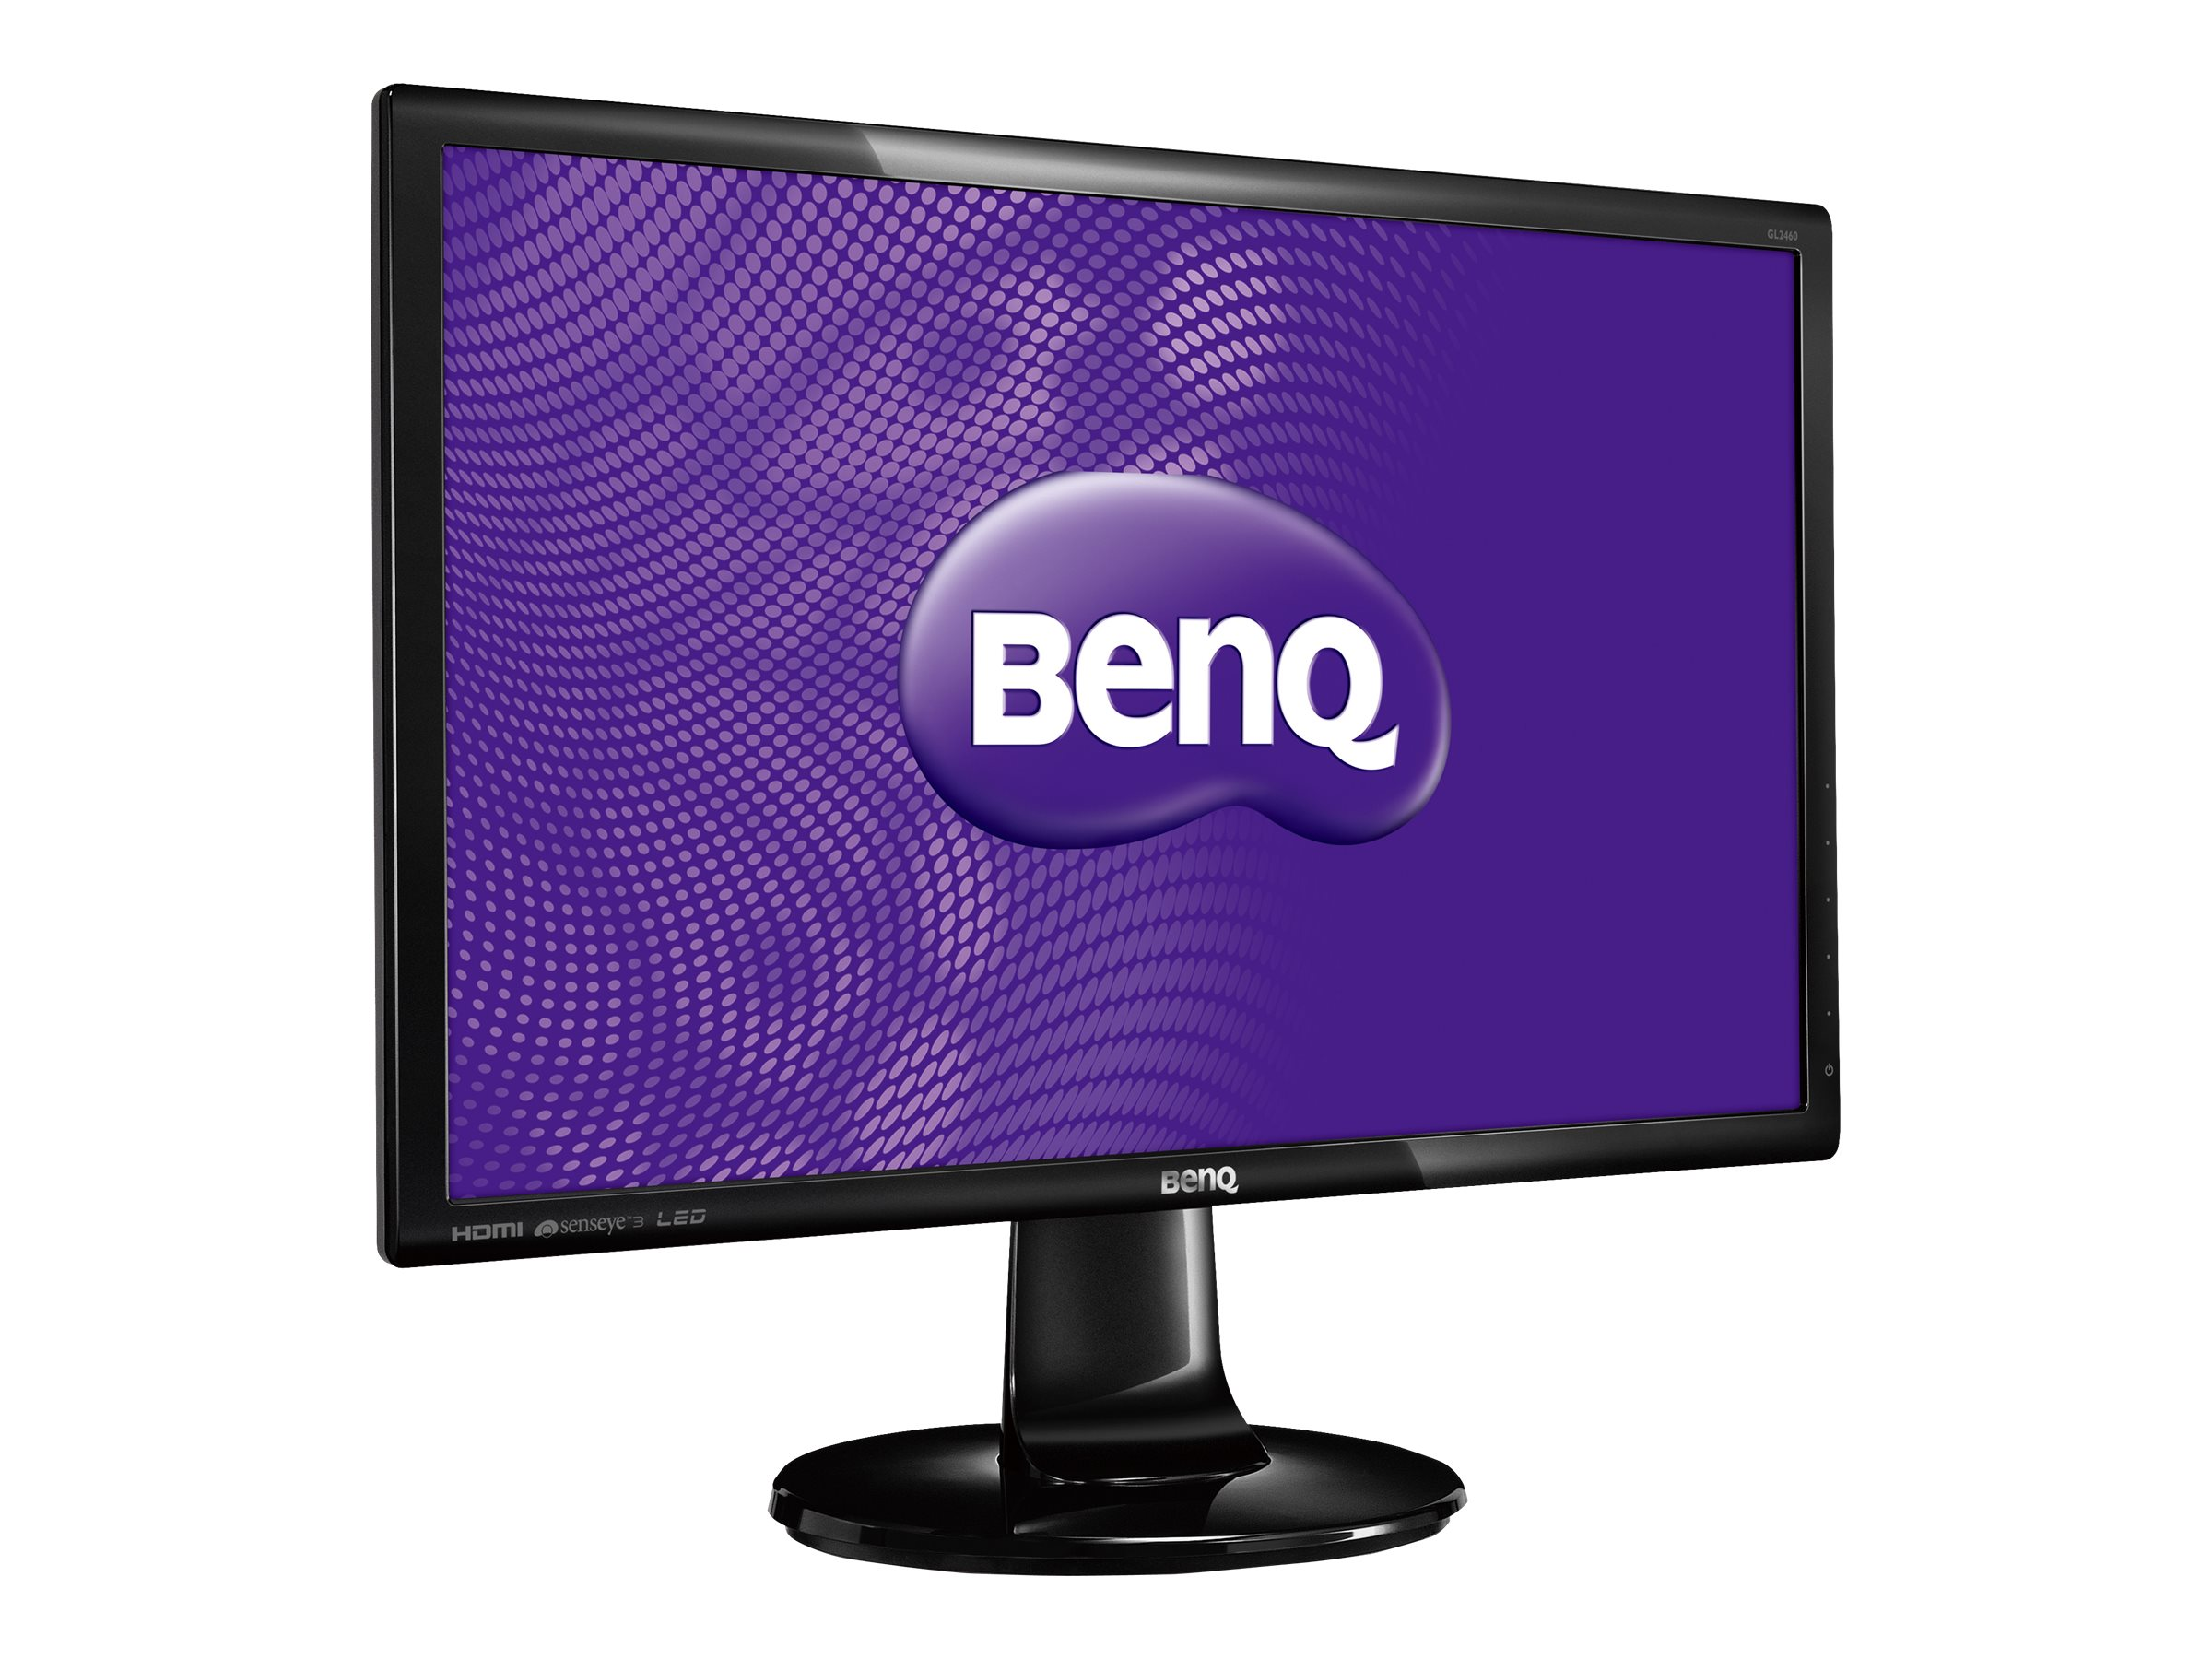 Benq 24 GL2460HM Full HD LED-LCD Monitor, Black, GL2460HM